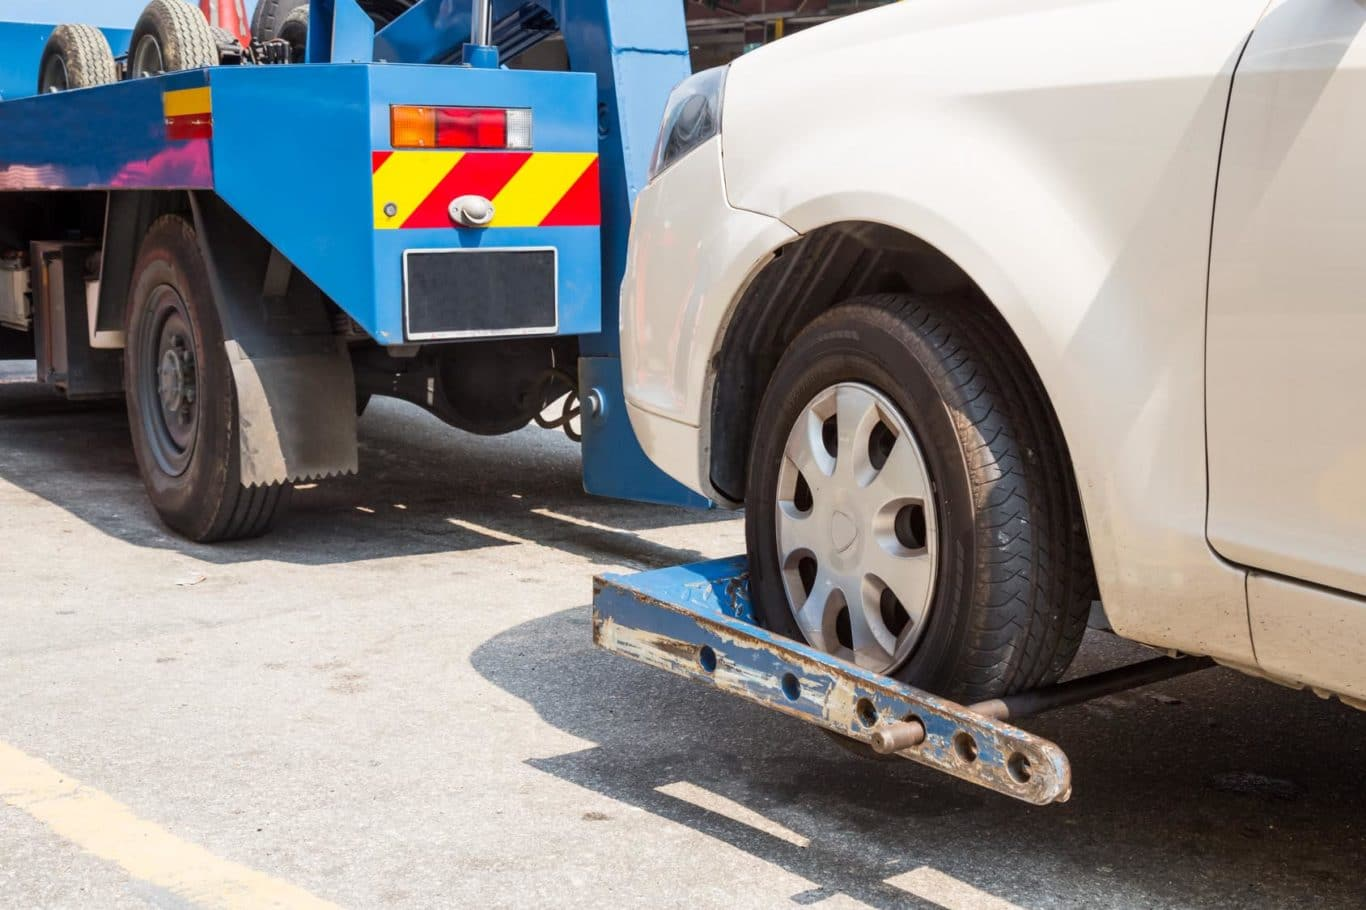 Louth, County Louth expert Car Recovery services